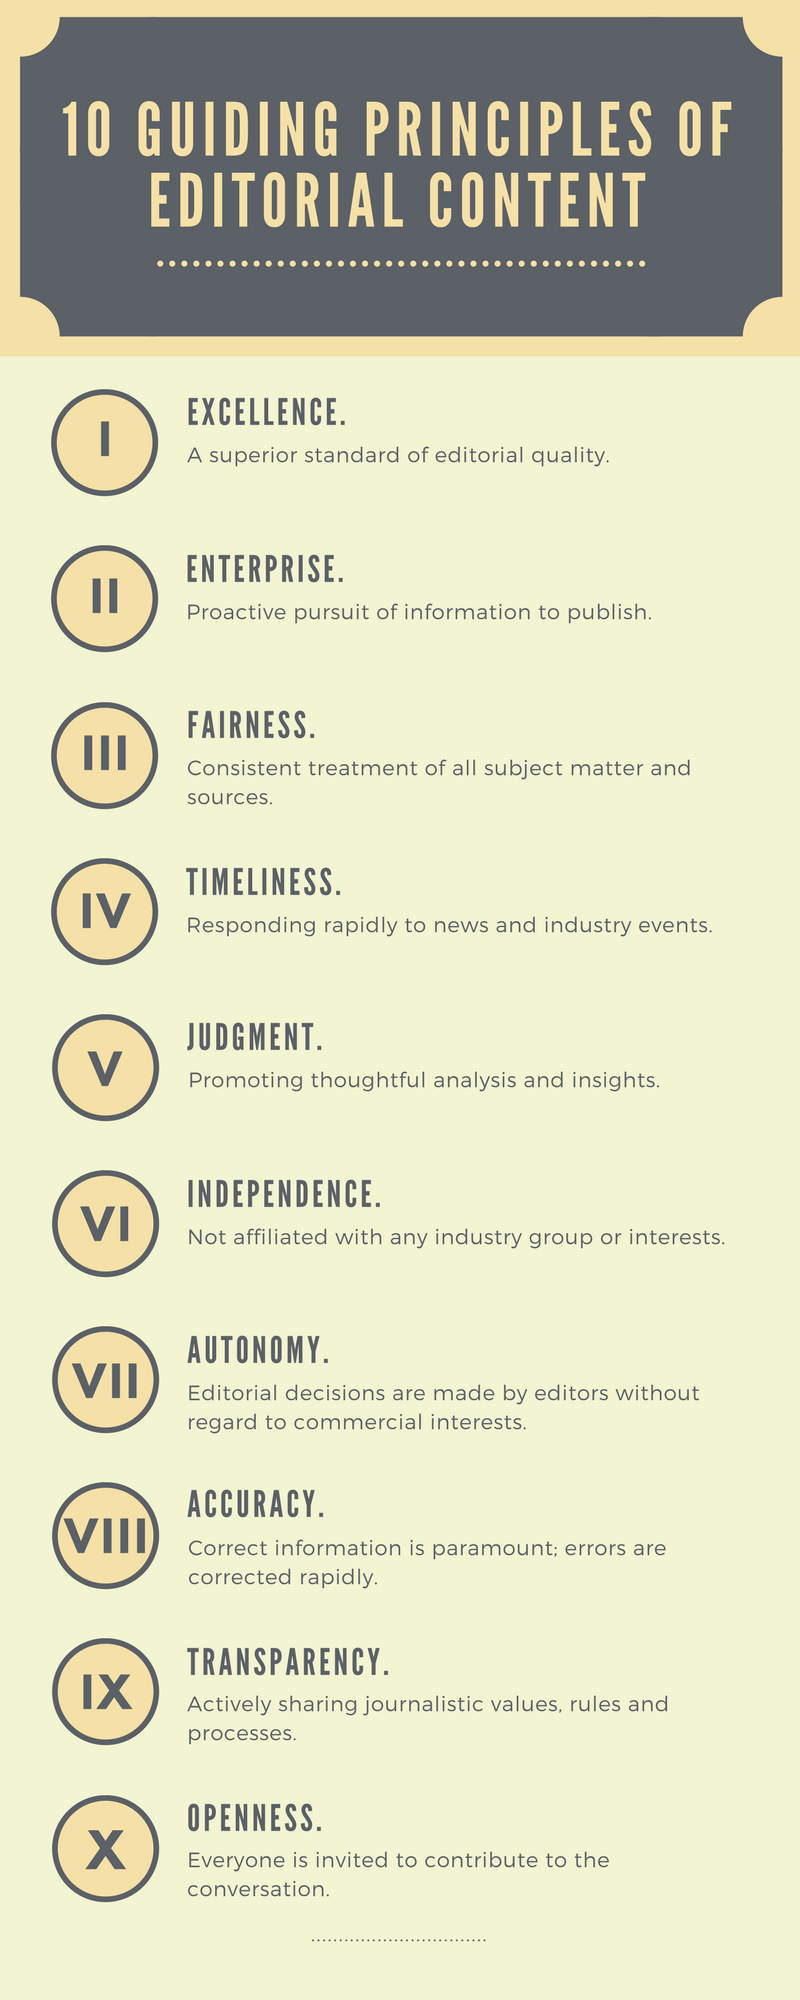 10 Guiding Principles of Editorial Content